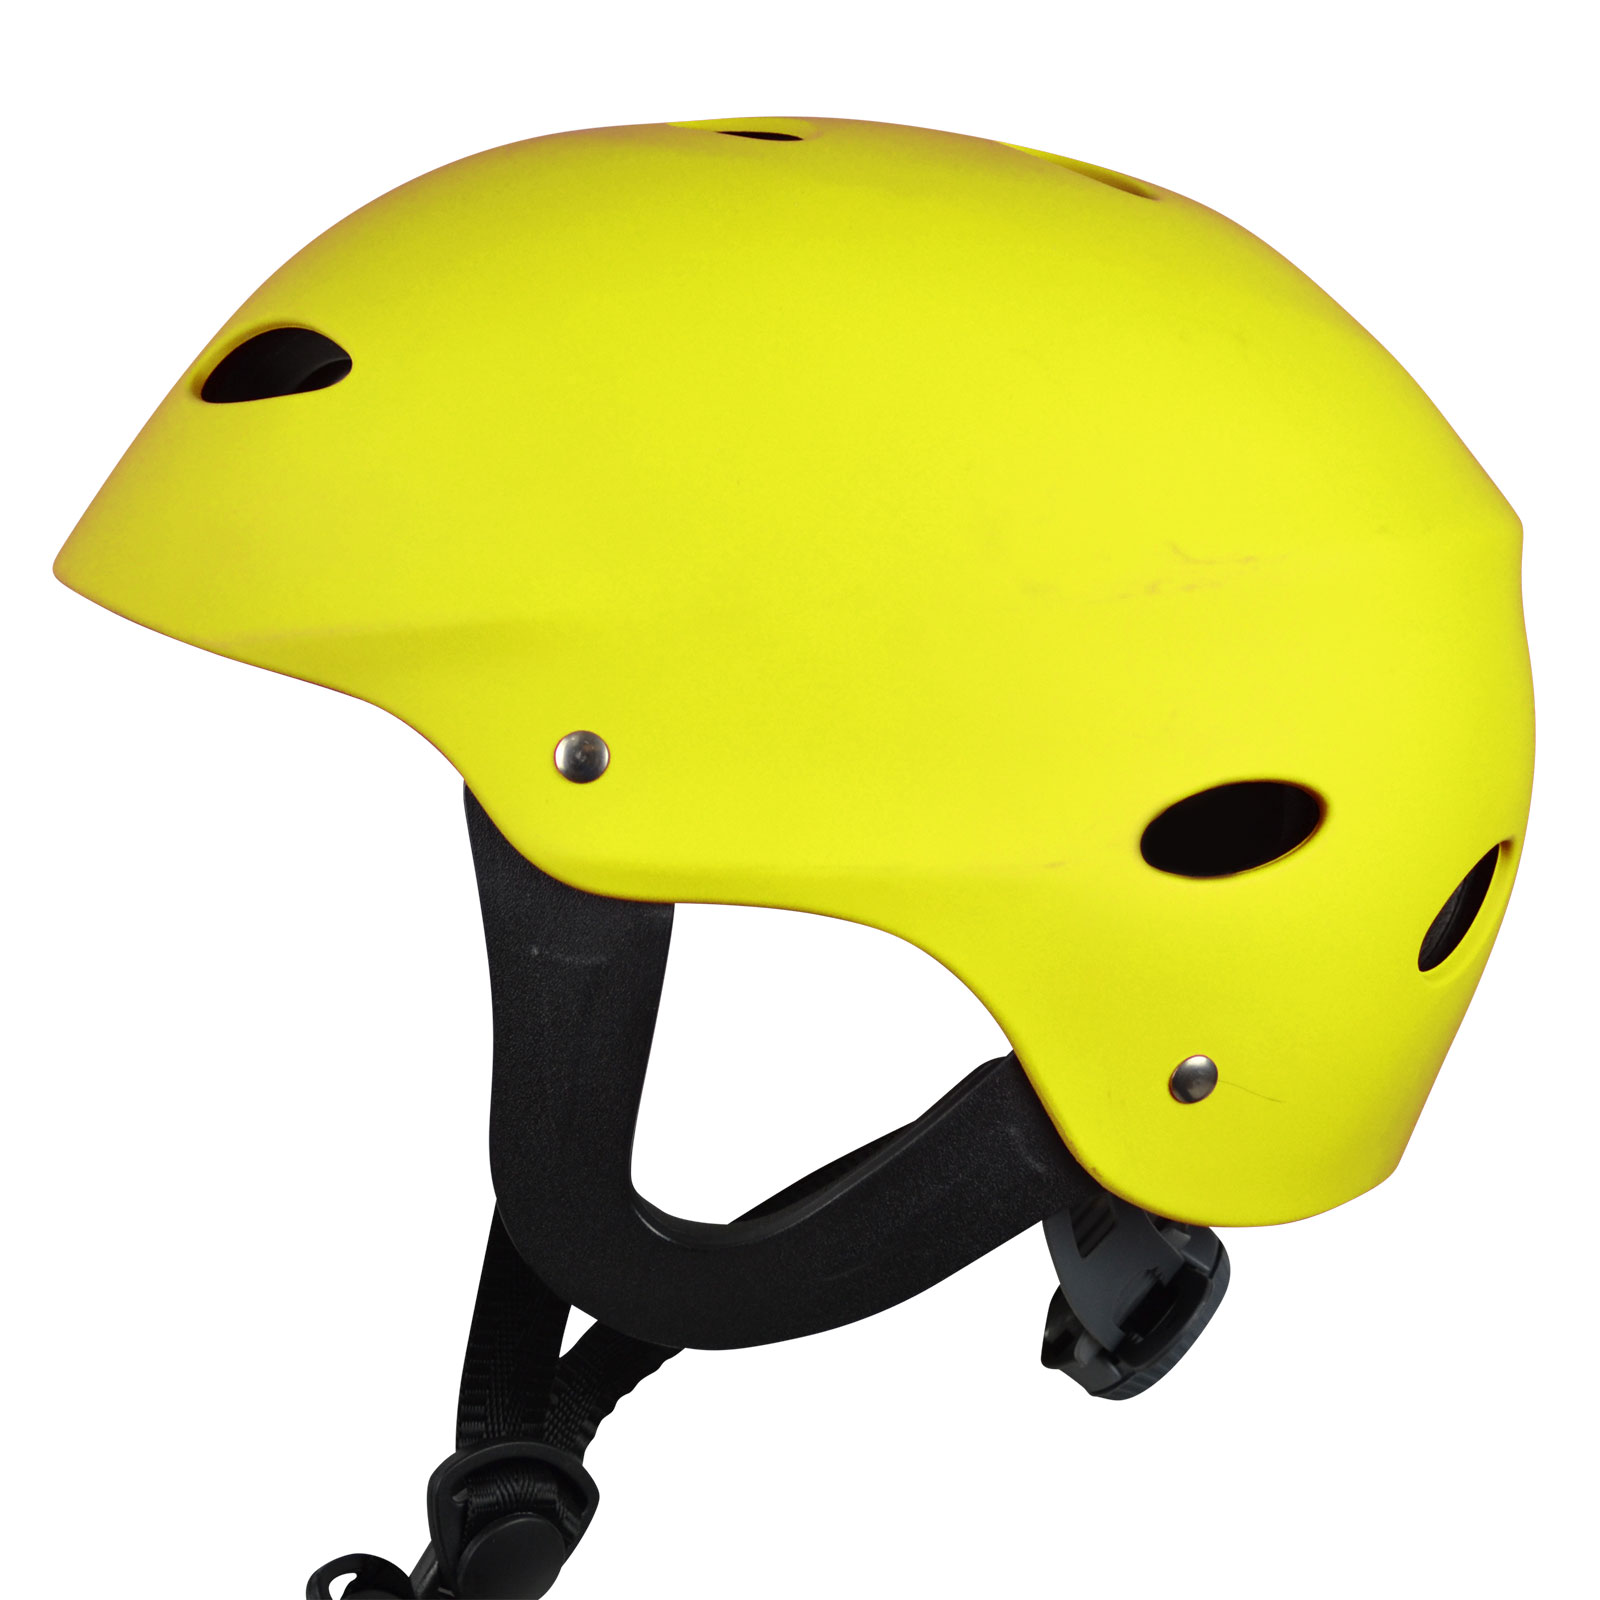 Circle One Centre Helmet (CE EN 1385)